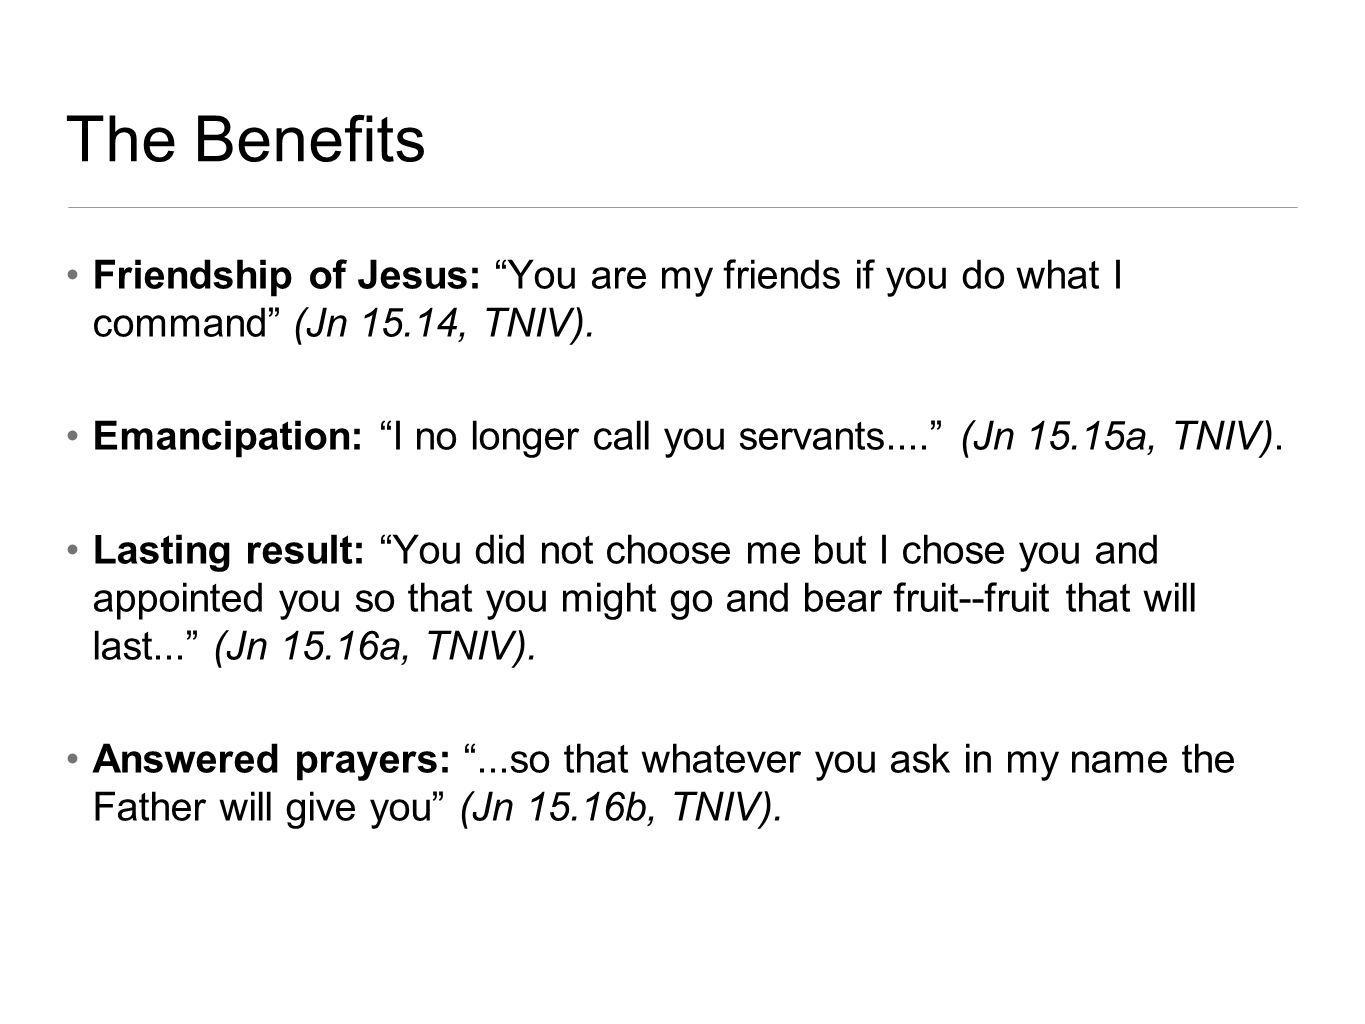 The Benefits Friendship of Jesus: You are my friends if you do what I command (Jn 15.14, TNIV).